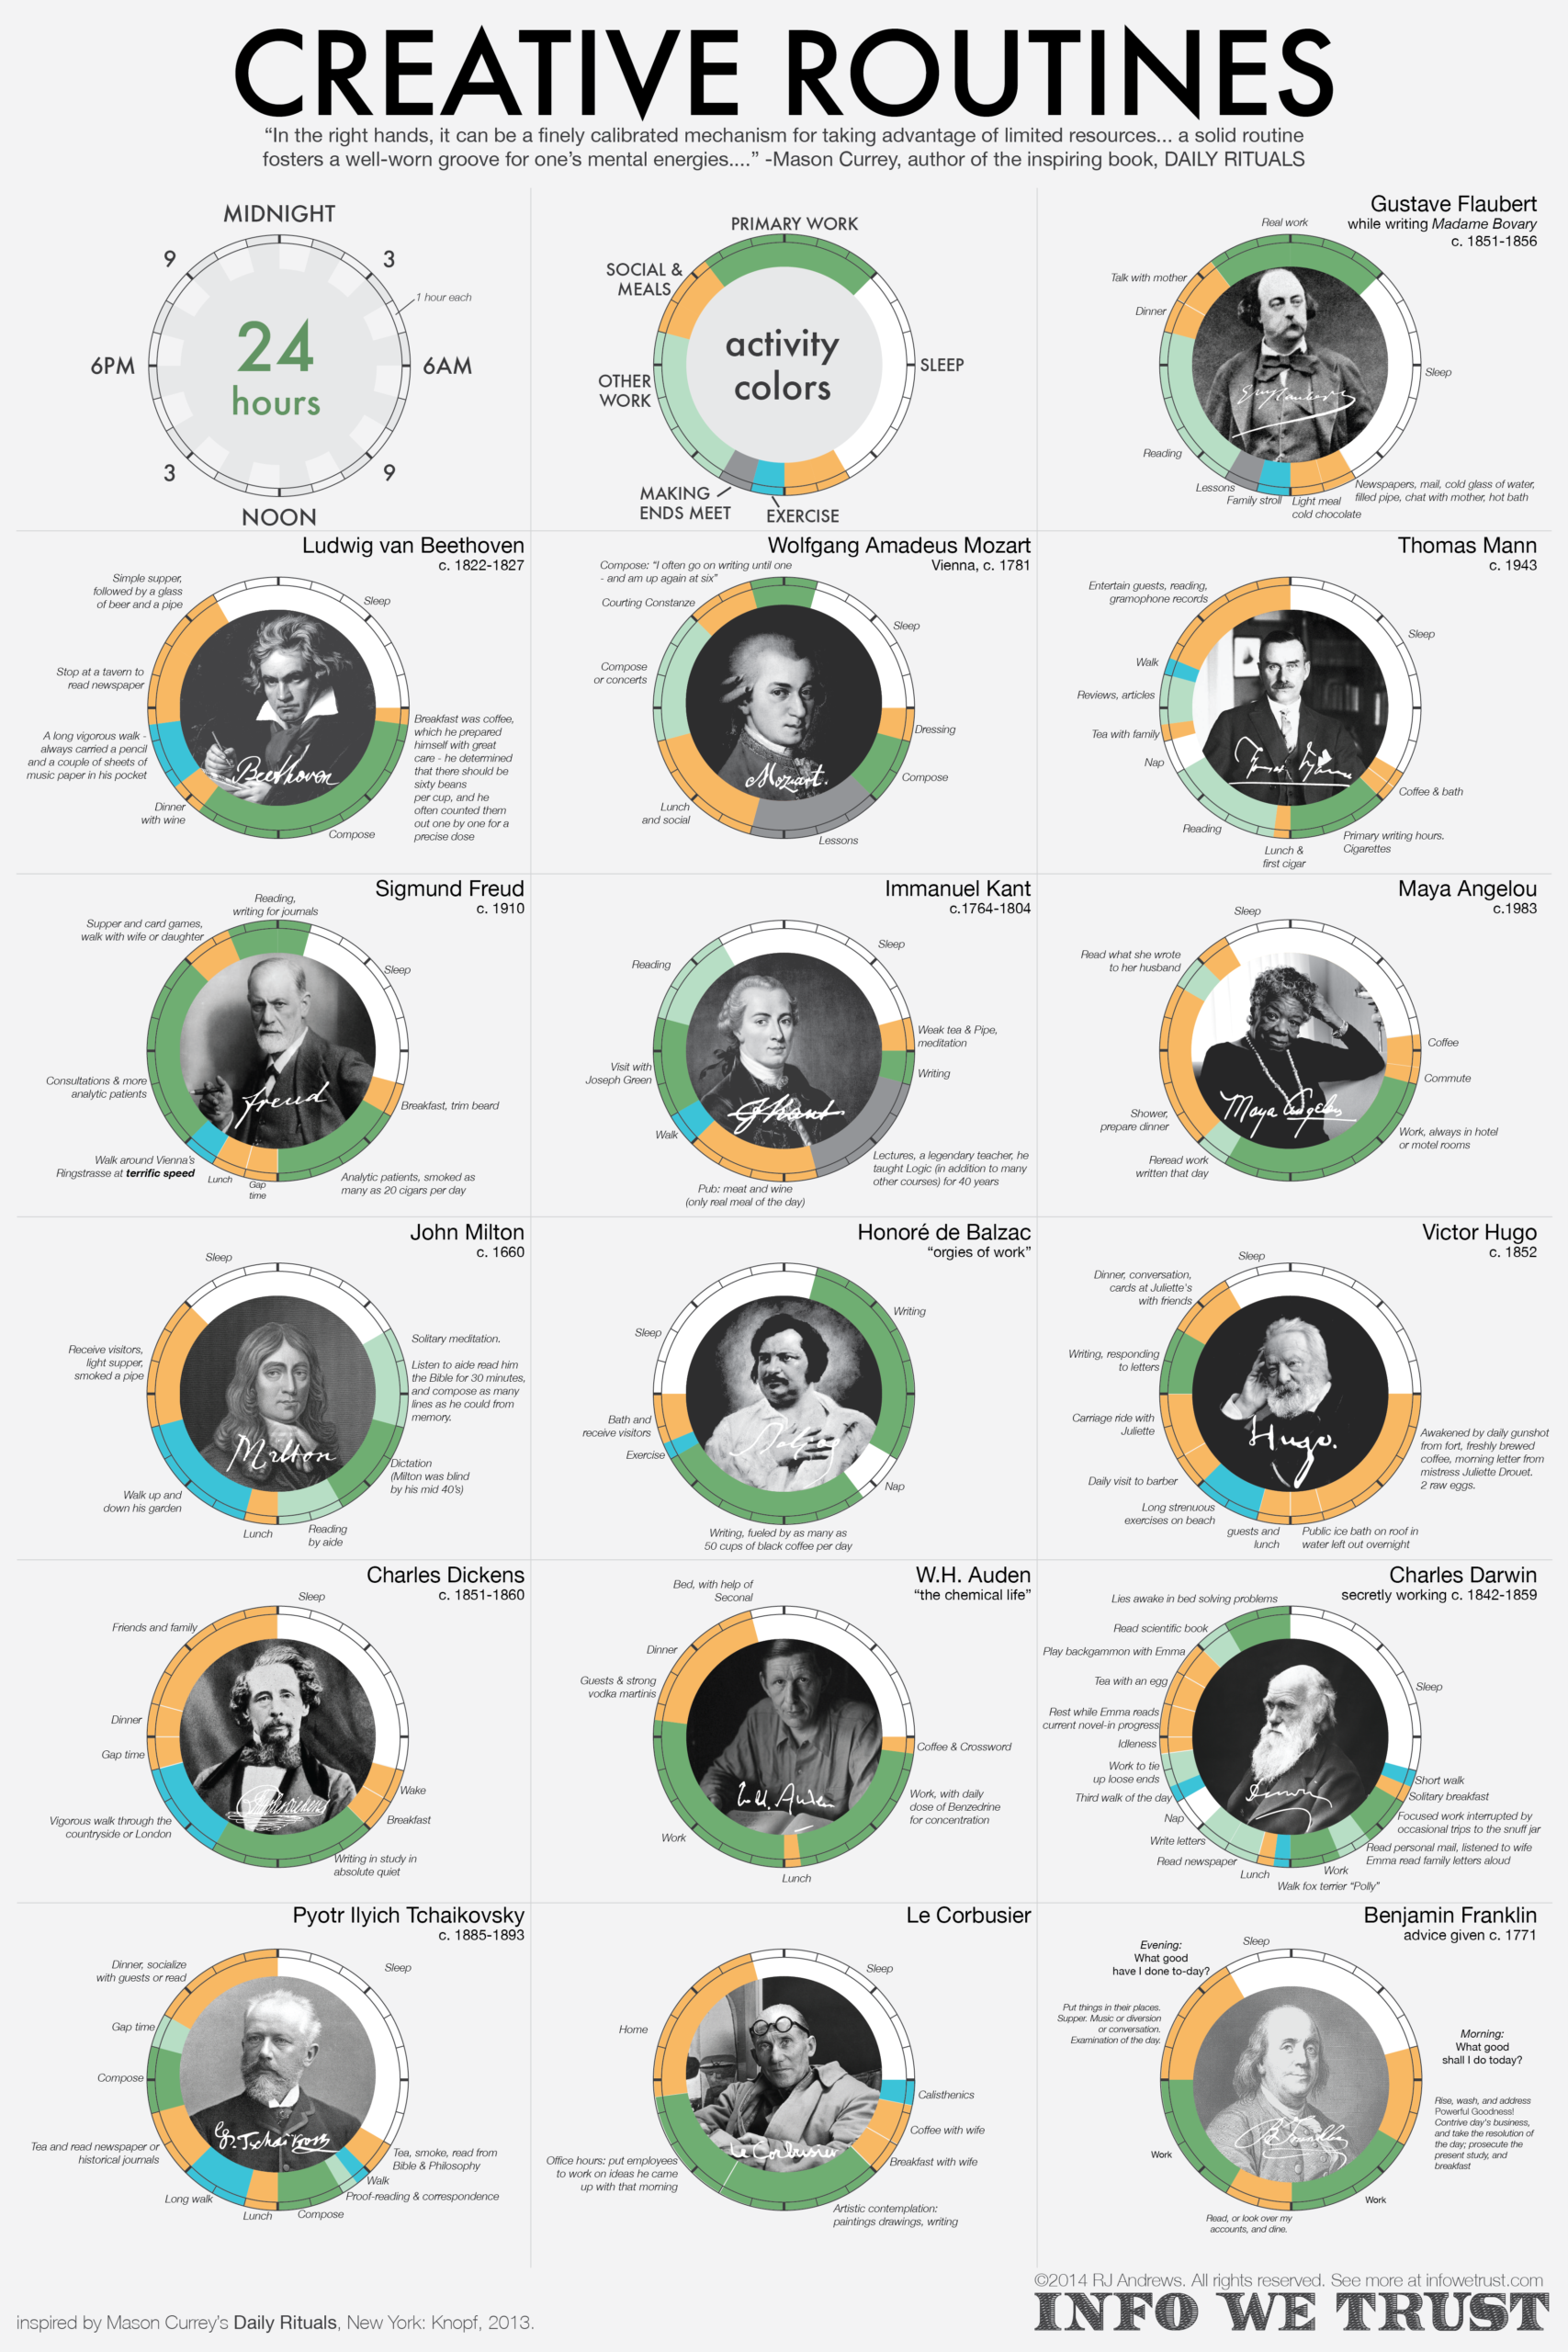 Creative routines by RJ Andrews. Comparing life habits of creatives like Mozart and Charles Dickens.